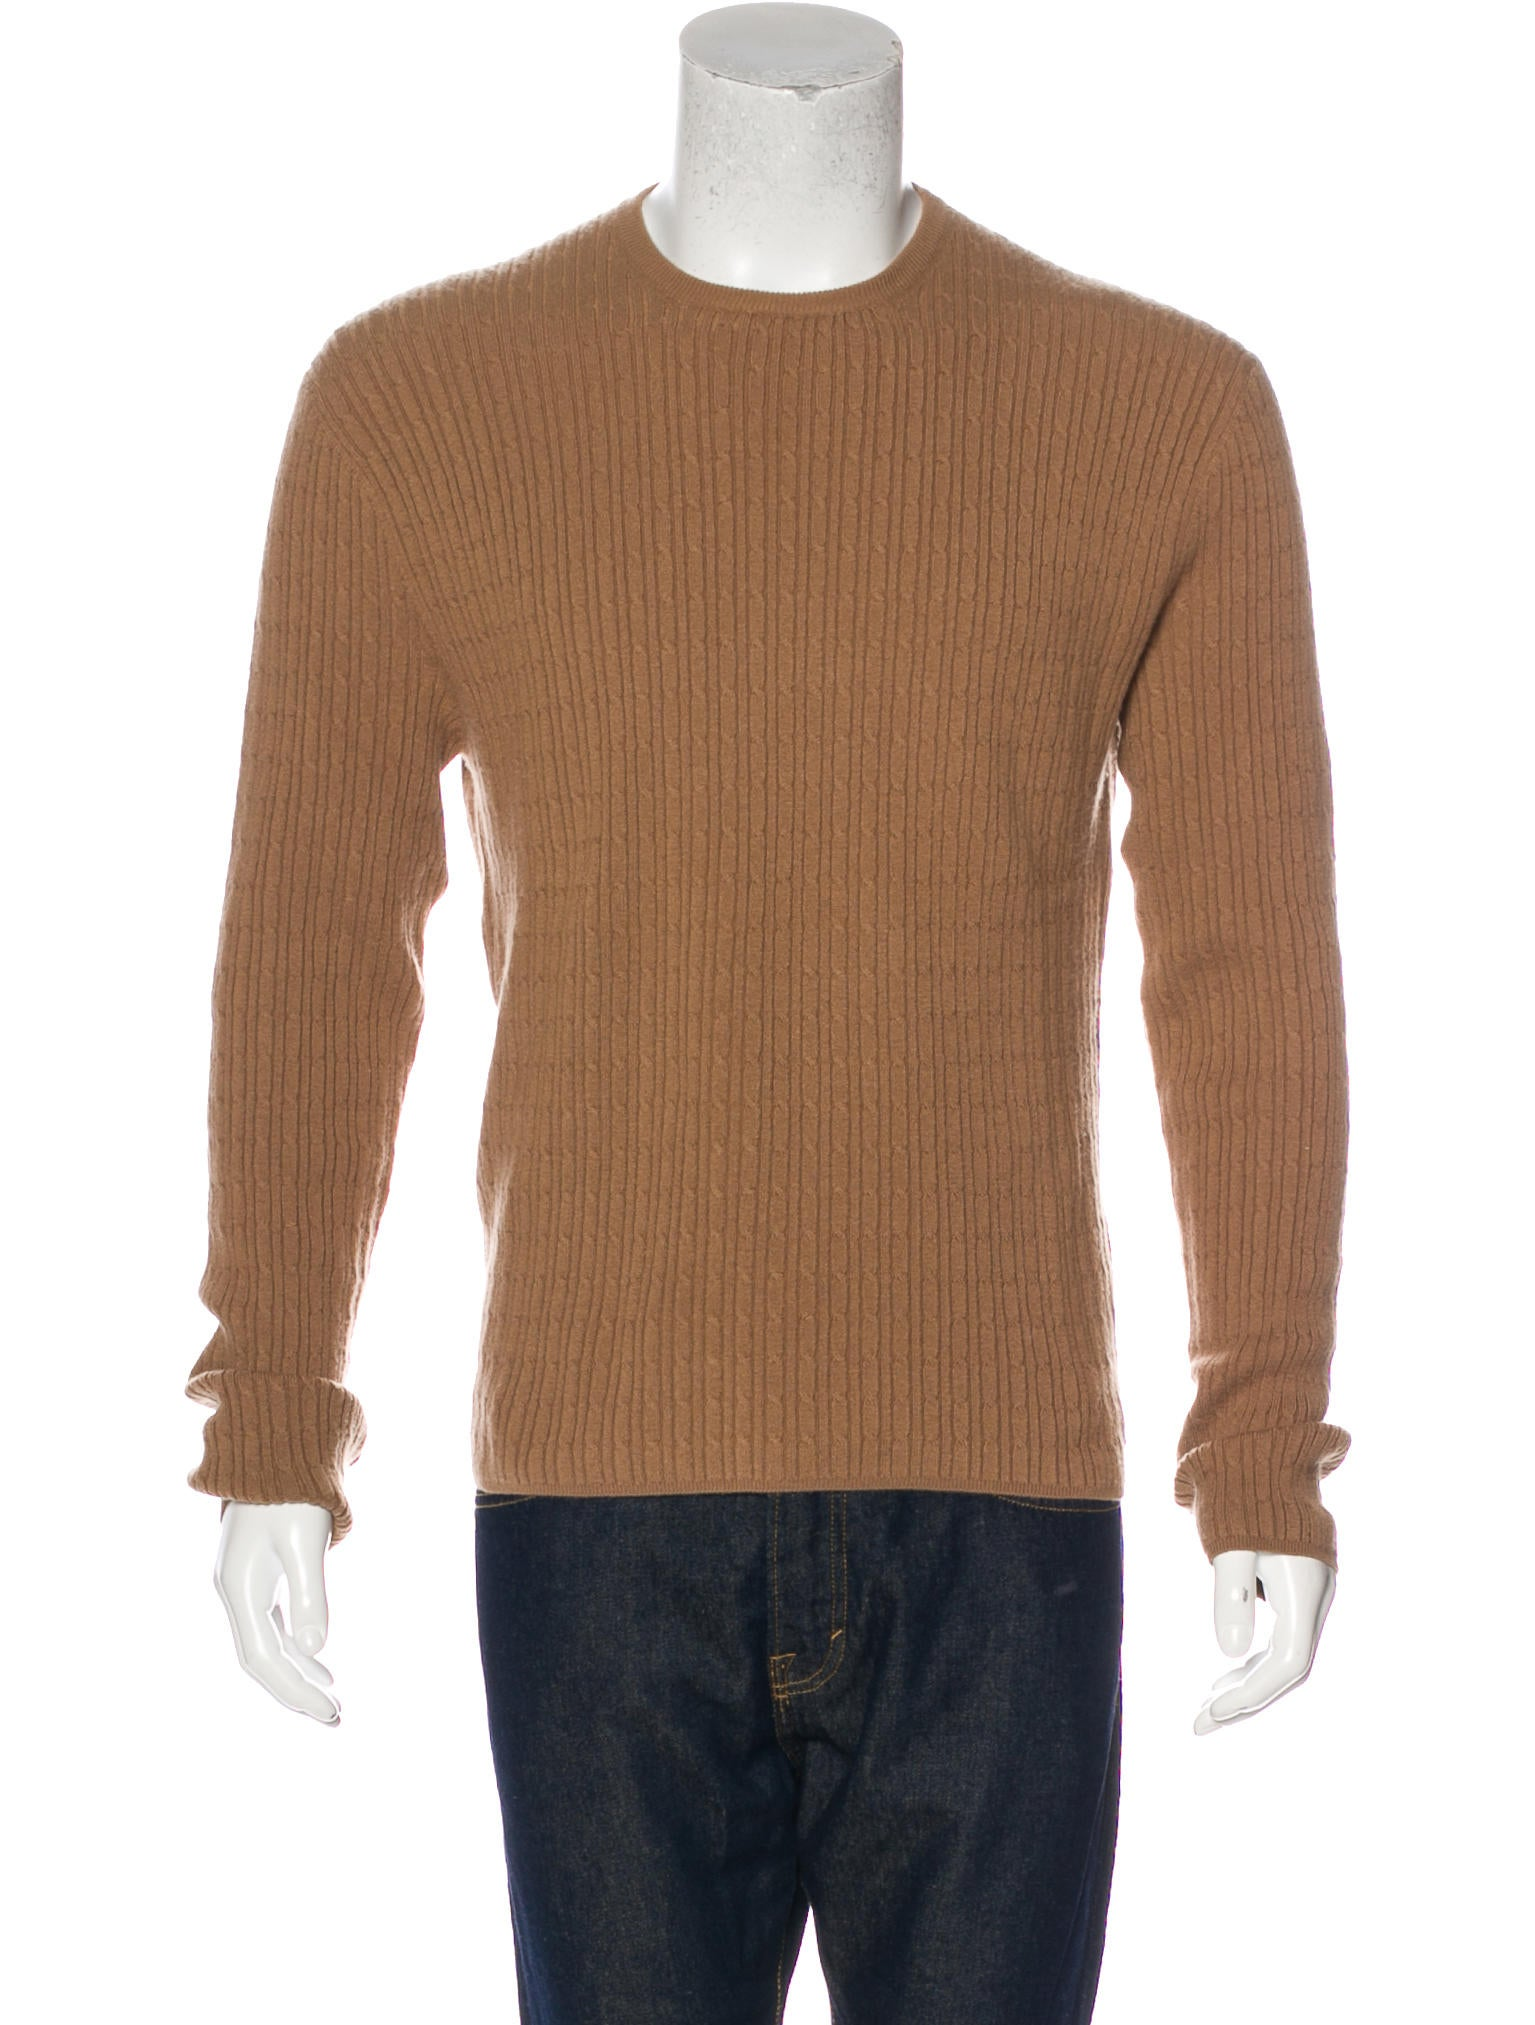 Gucci Cashmere Cable Knit Sweater - Clothing - GUC169745 | The ...